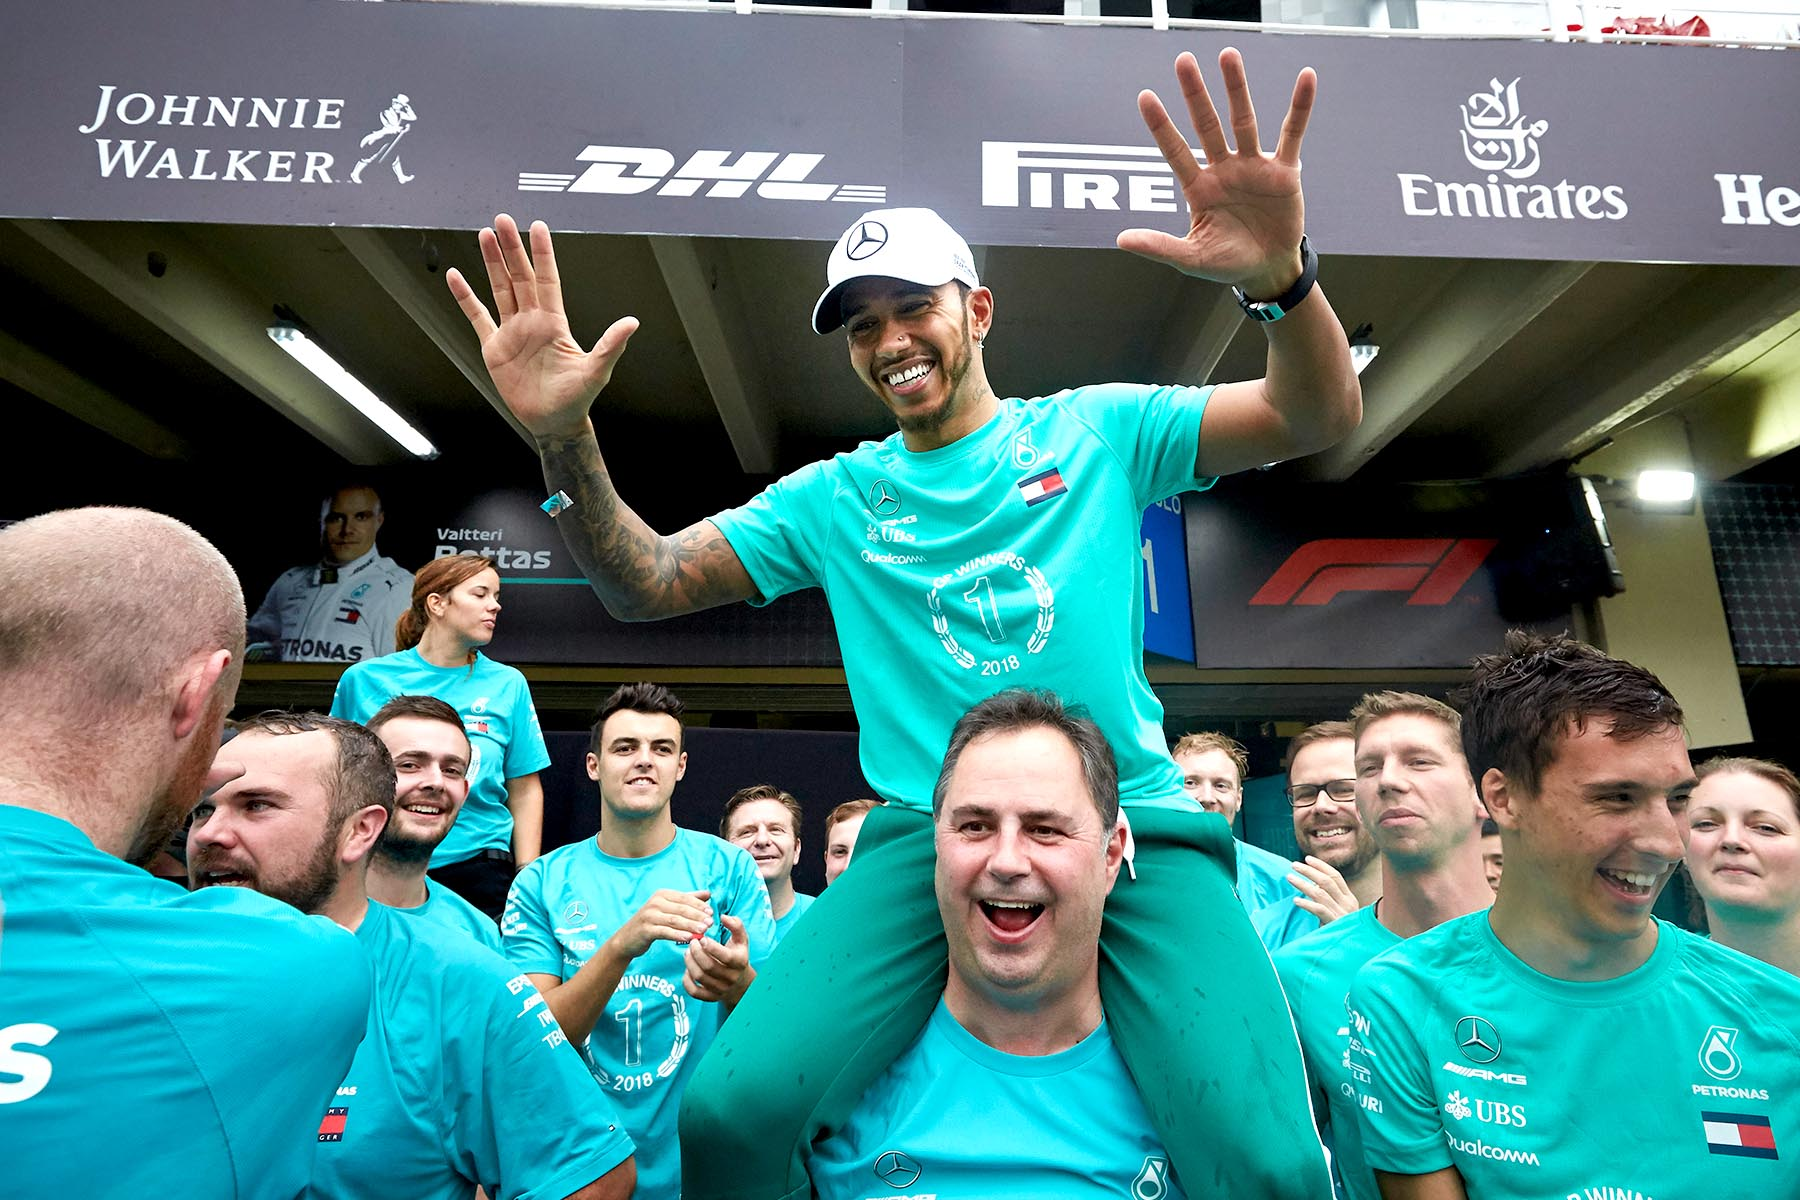 Lewis Hamilton celebrates at the 2018 Brazilian Grand Prix.